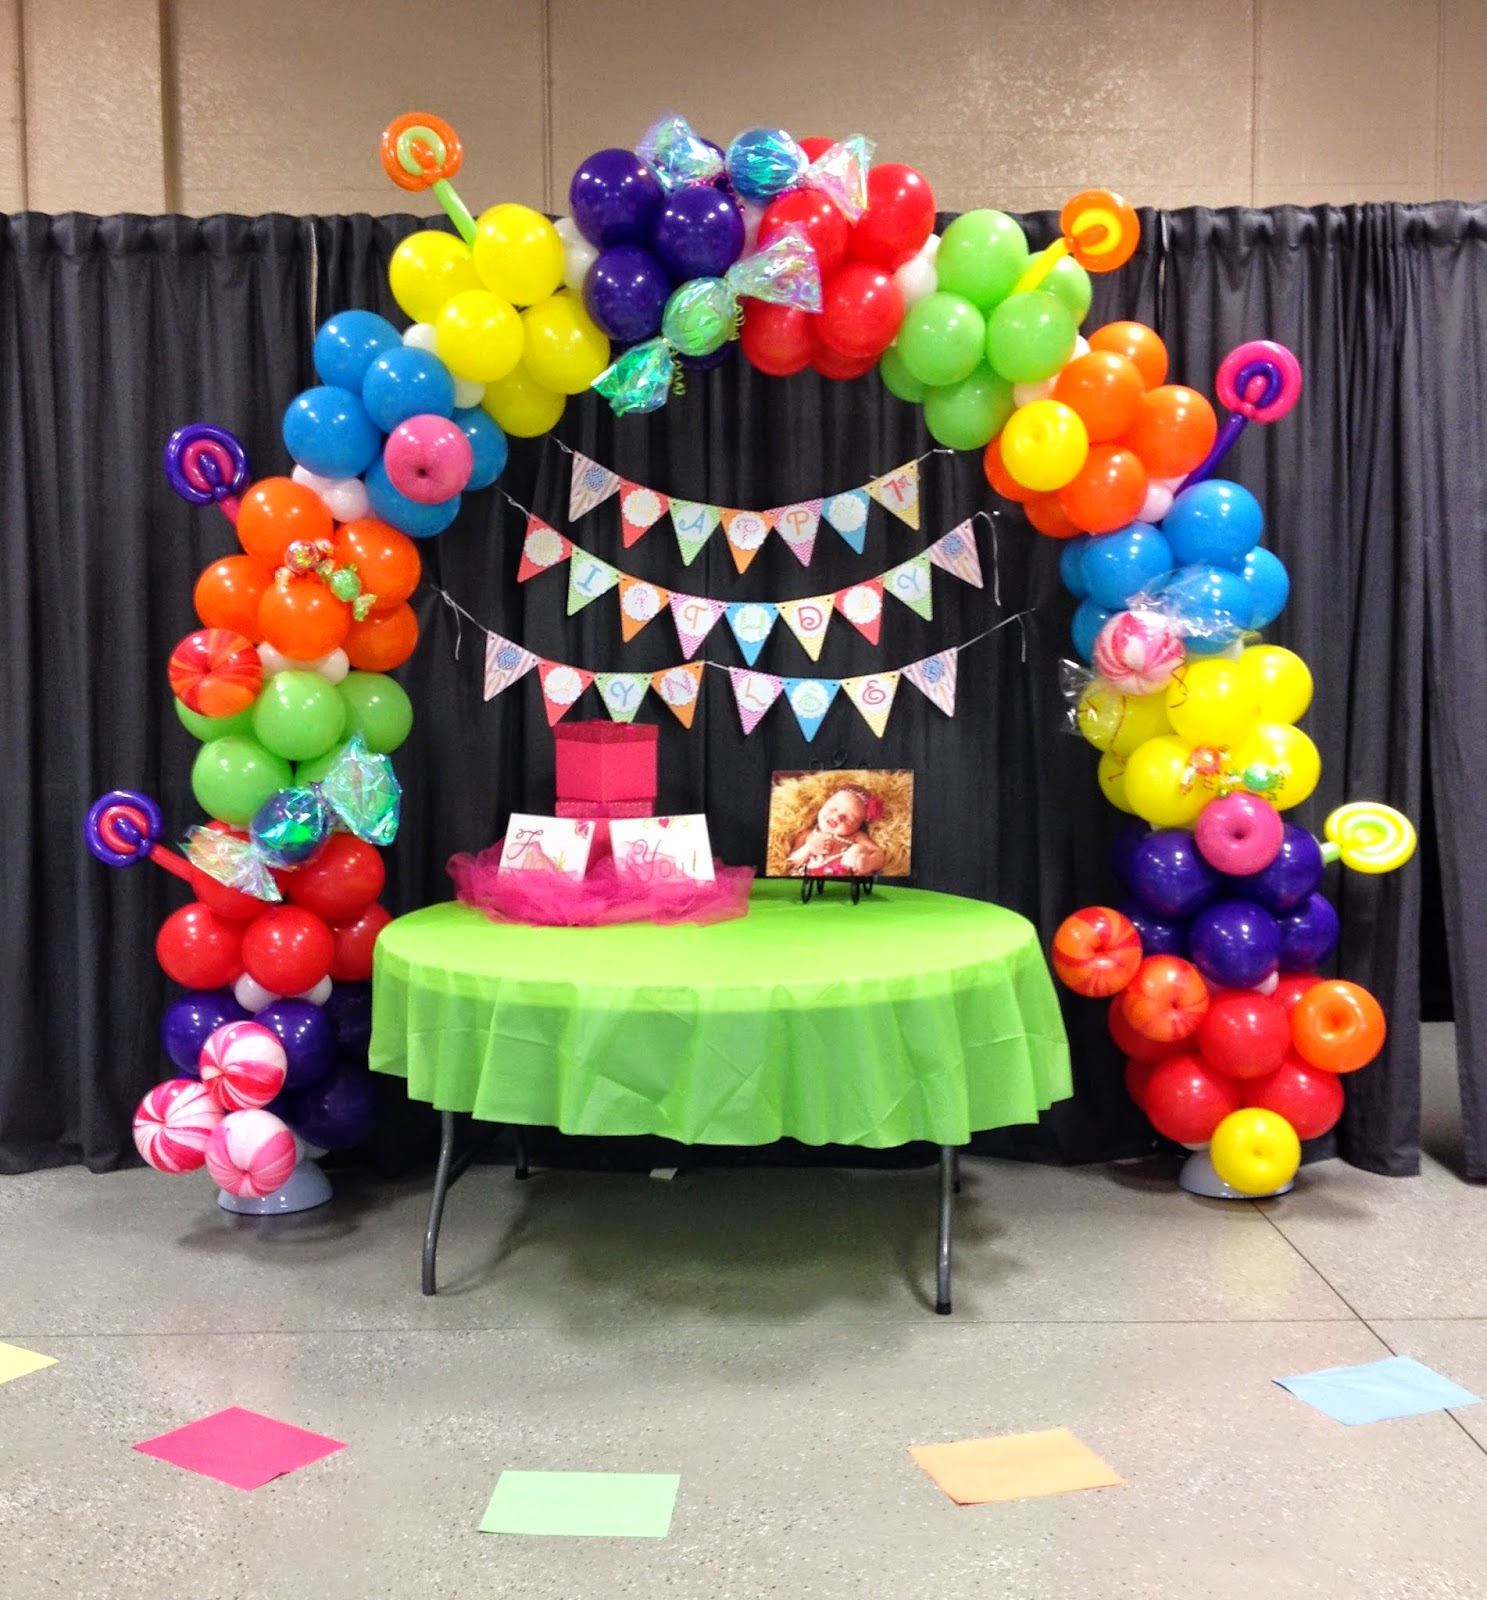 Party people event decorating company candyland balloon arch for Balloon decoration images party